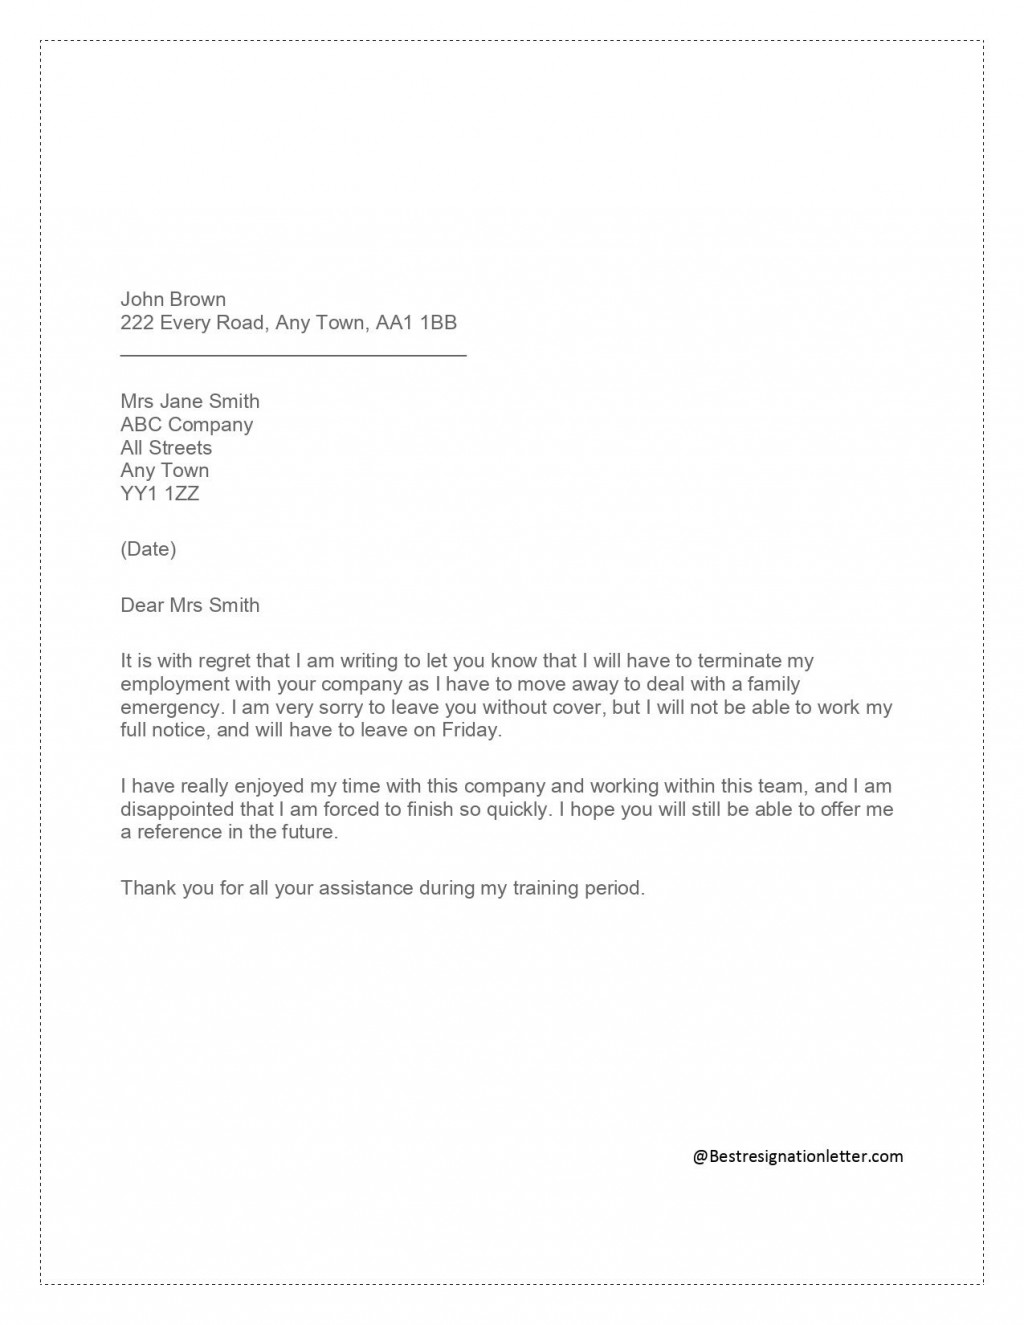 003 Breathtaking Sample Resignation Letter Template Email Highest Quality Large